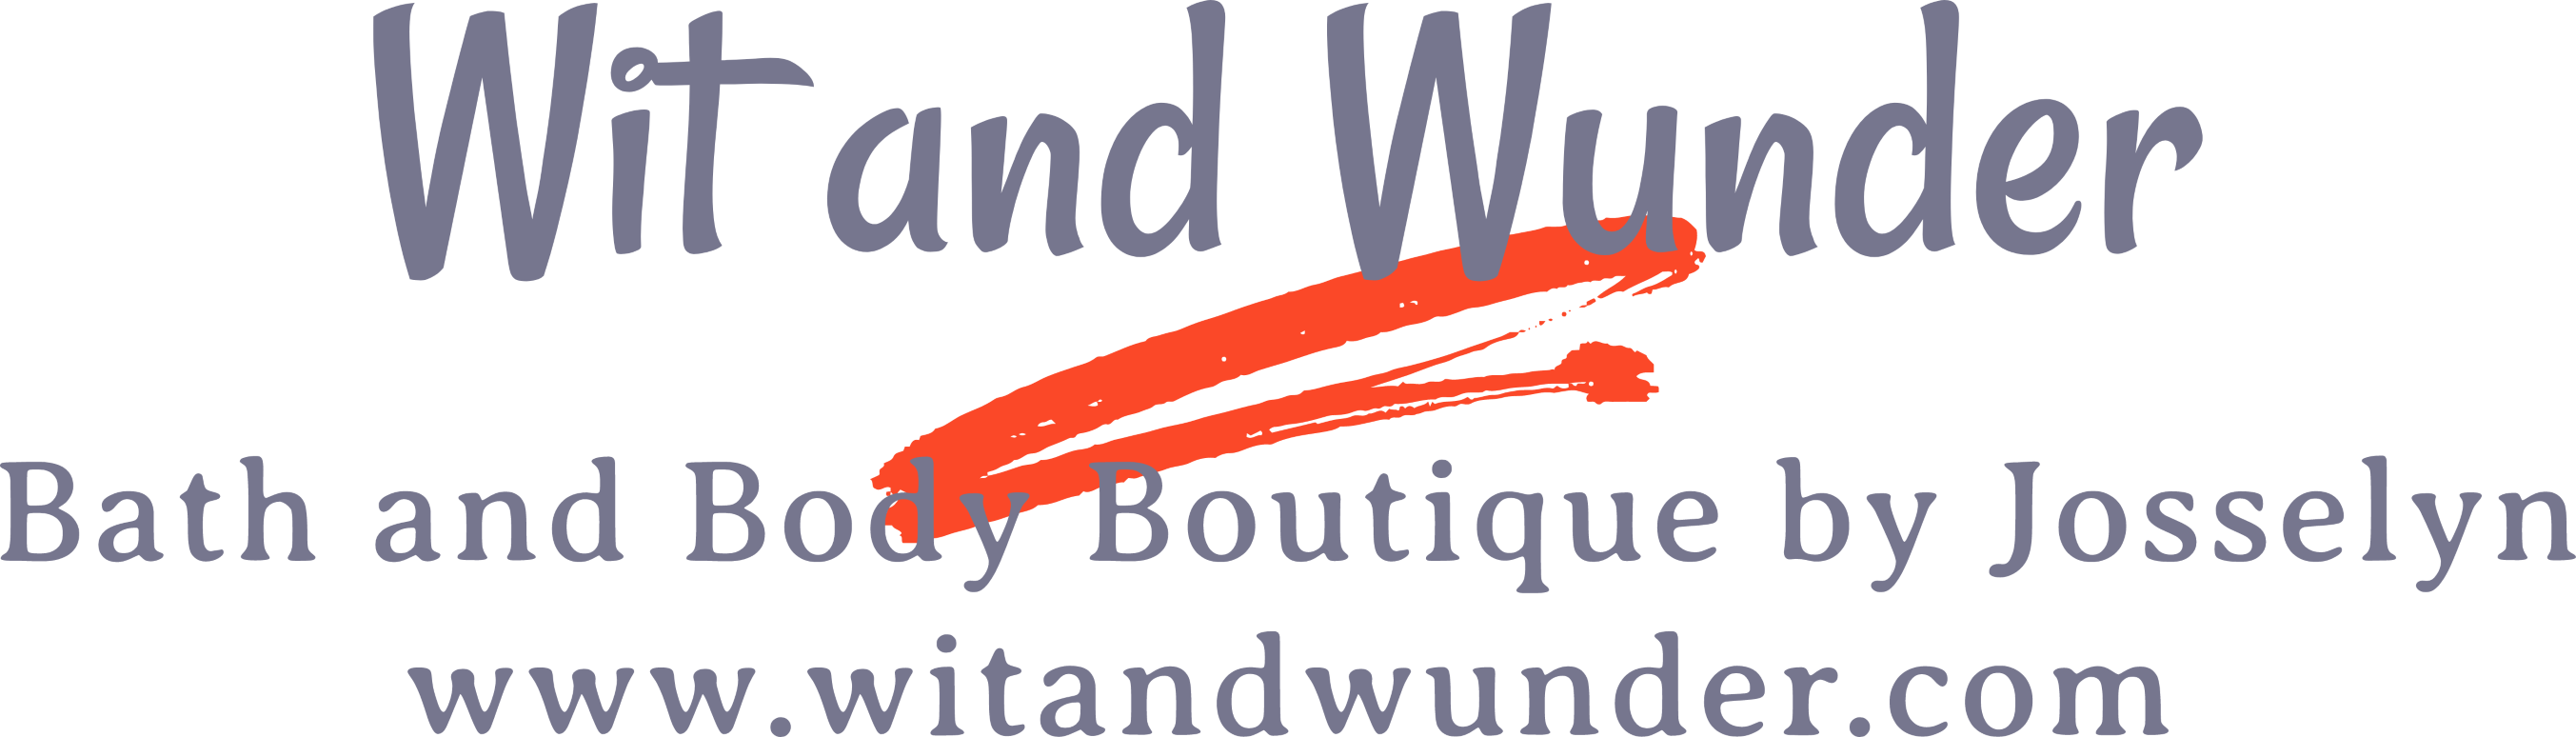 Wit and Wunder Logo